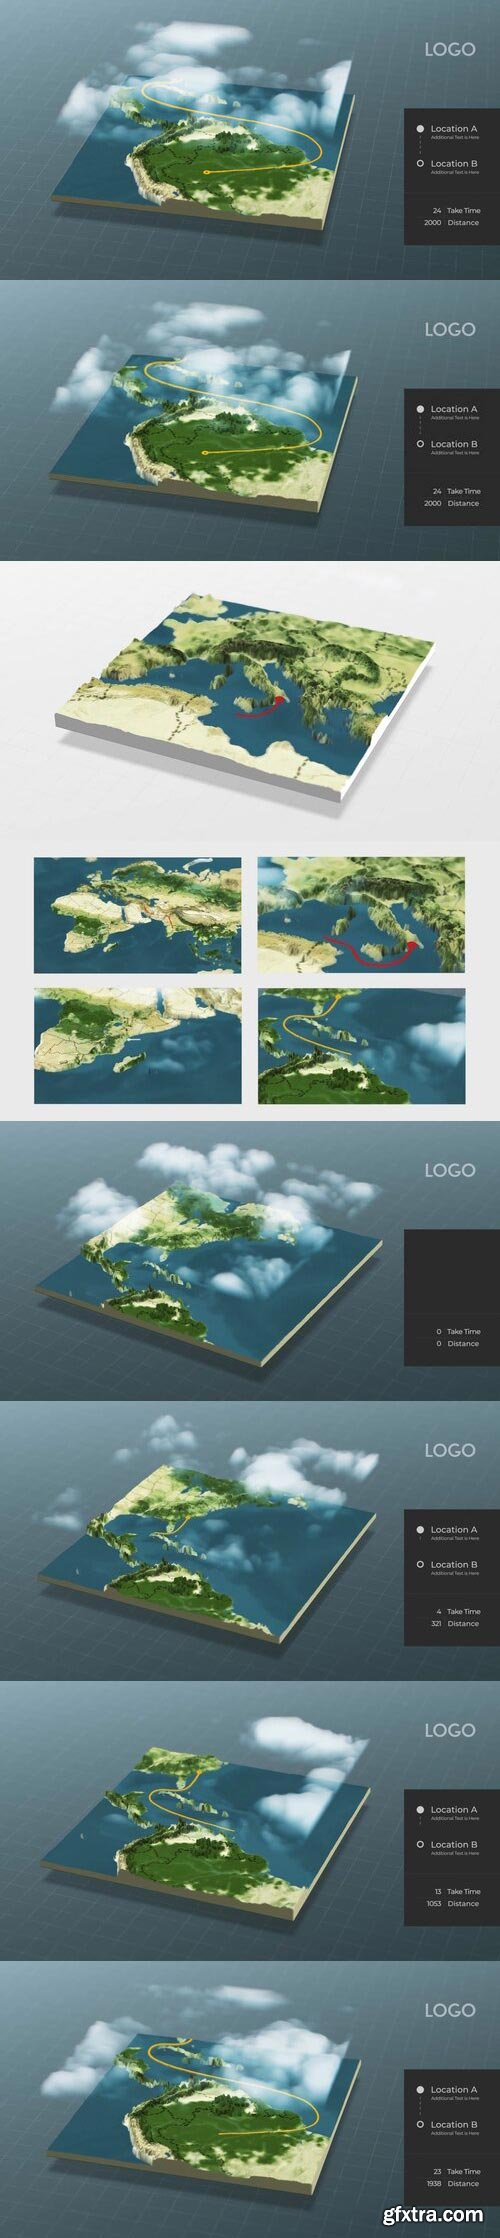 Videohive - World Map Connector - 29504986